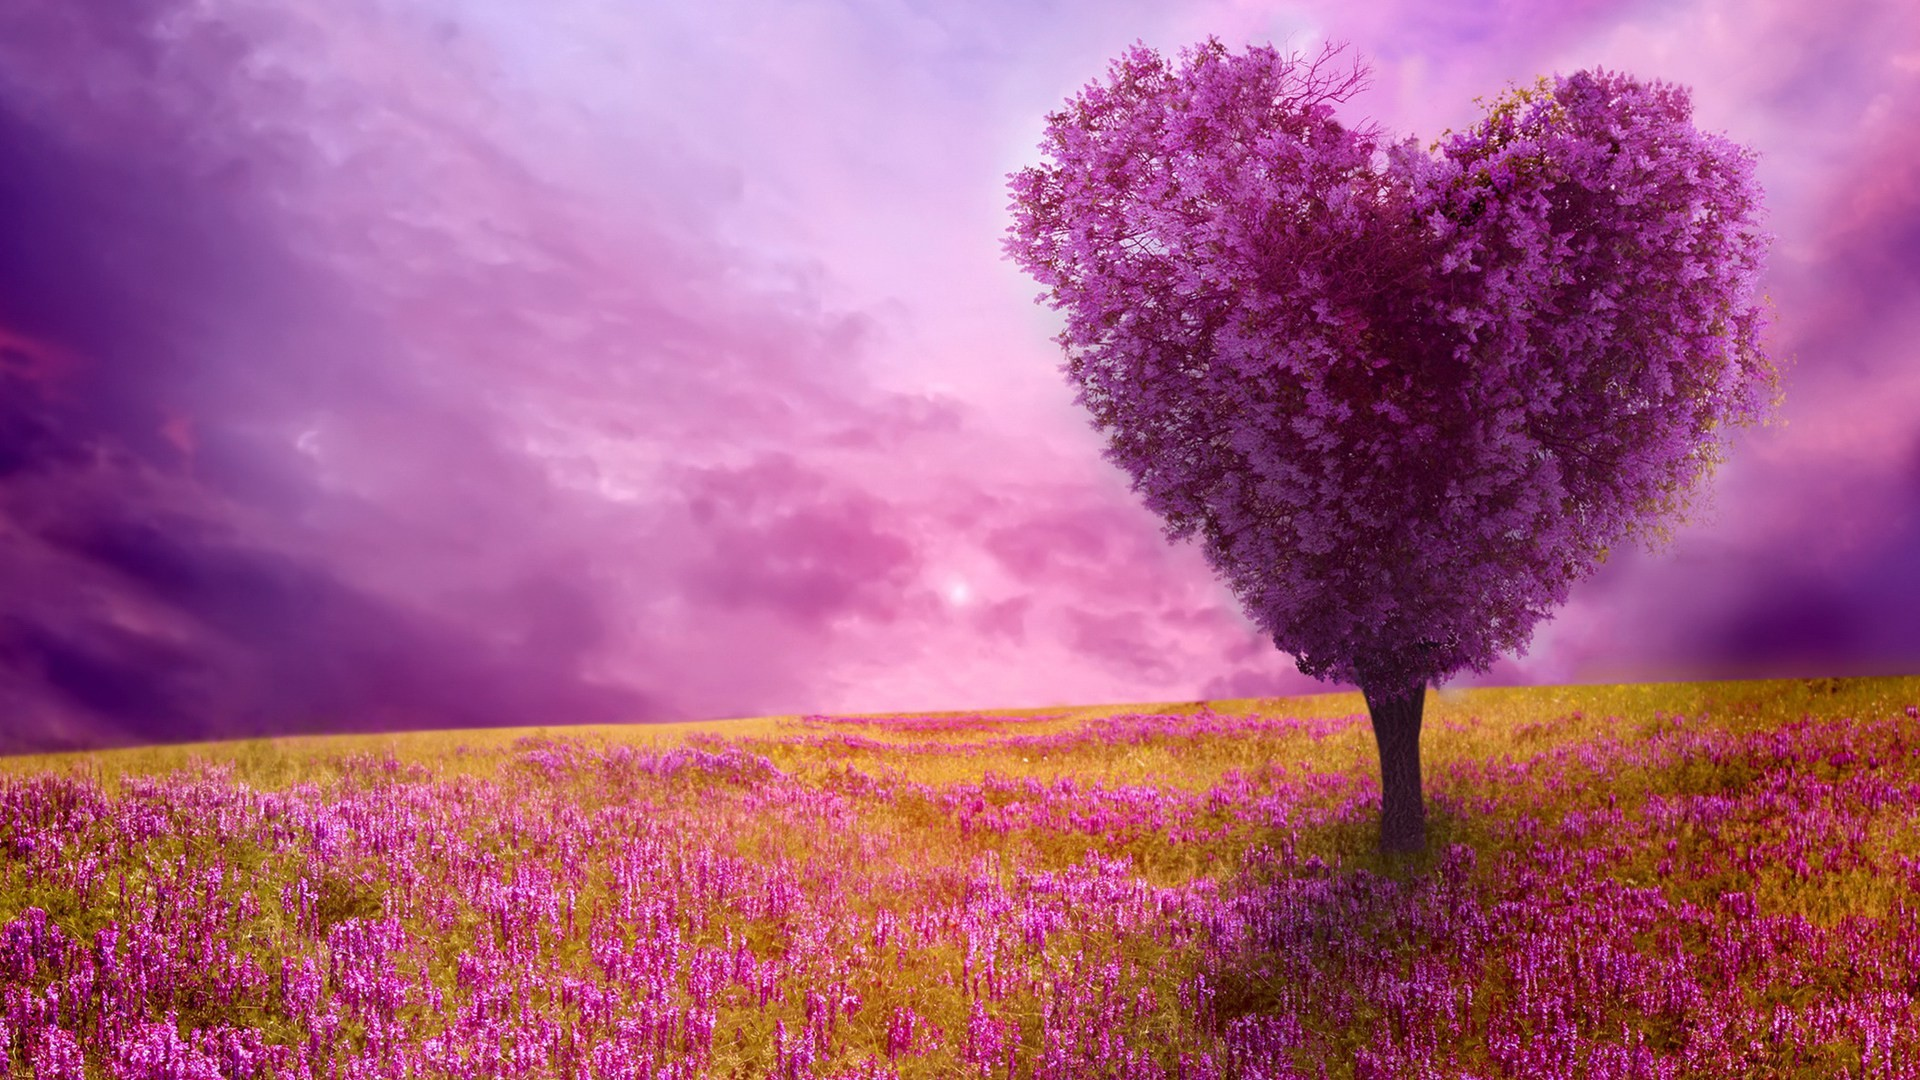 Spring Wallpaper and Screensavers HD (70+ images) - photo#11